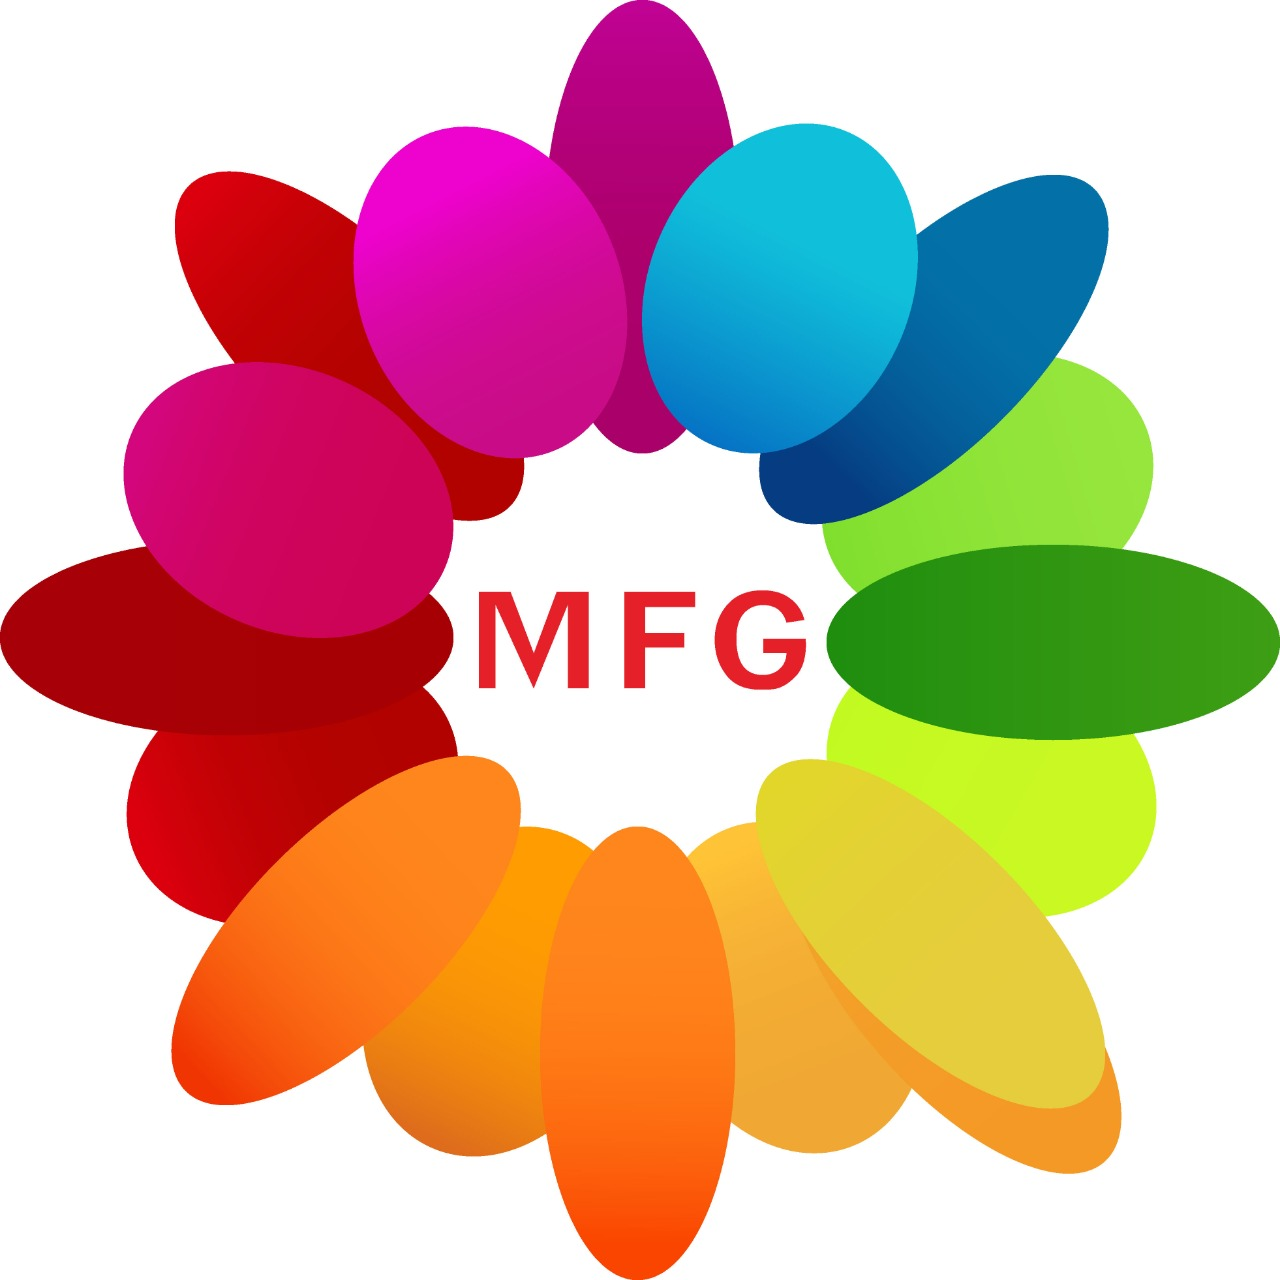 Fruit Flower Basket How To : Red roses arranged in glass vase with cute teddy bear